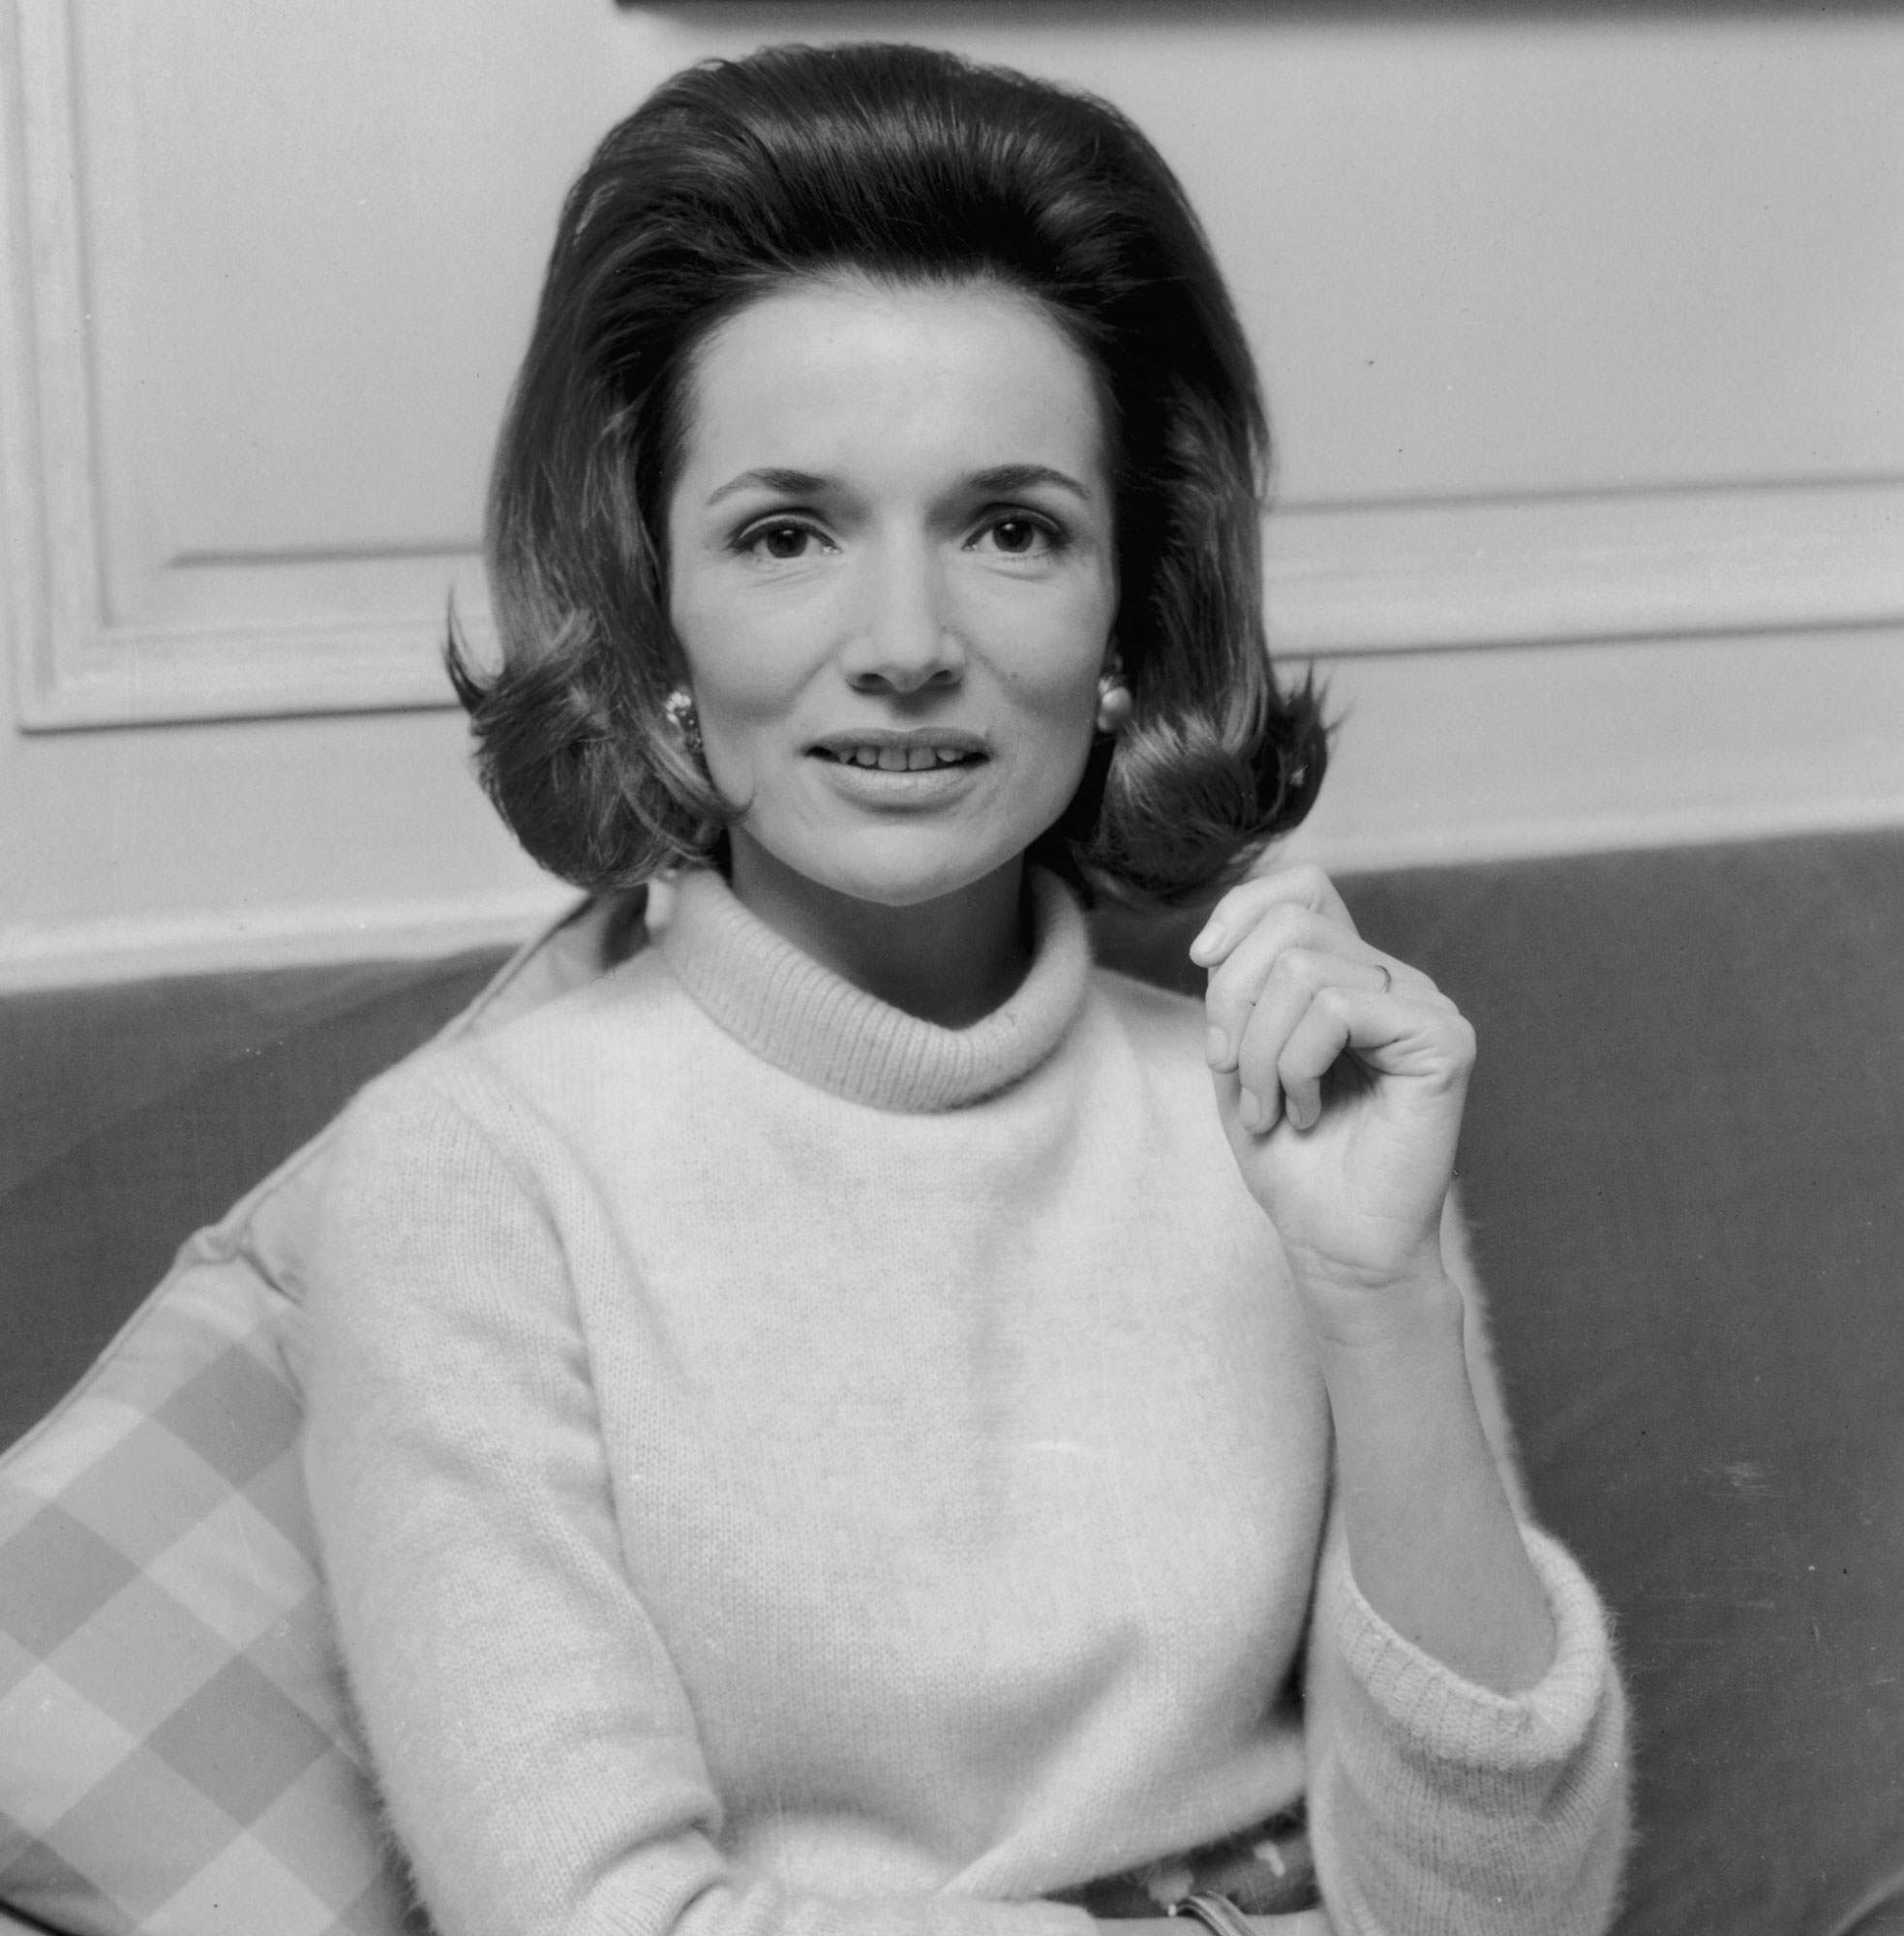 Lee Radziwill, Jackie Kennedy's Younger Sister, Dies at 85: Reports